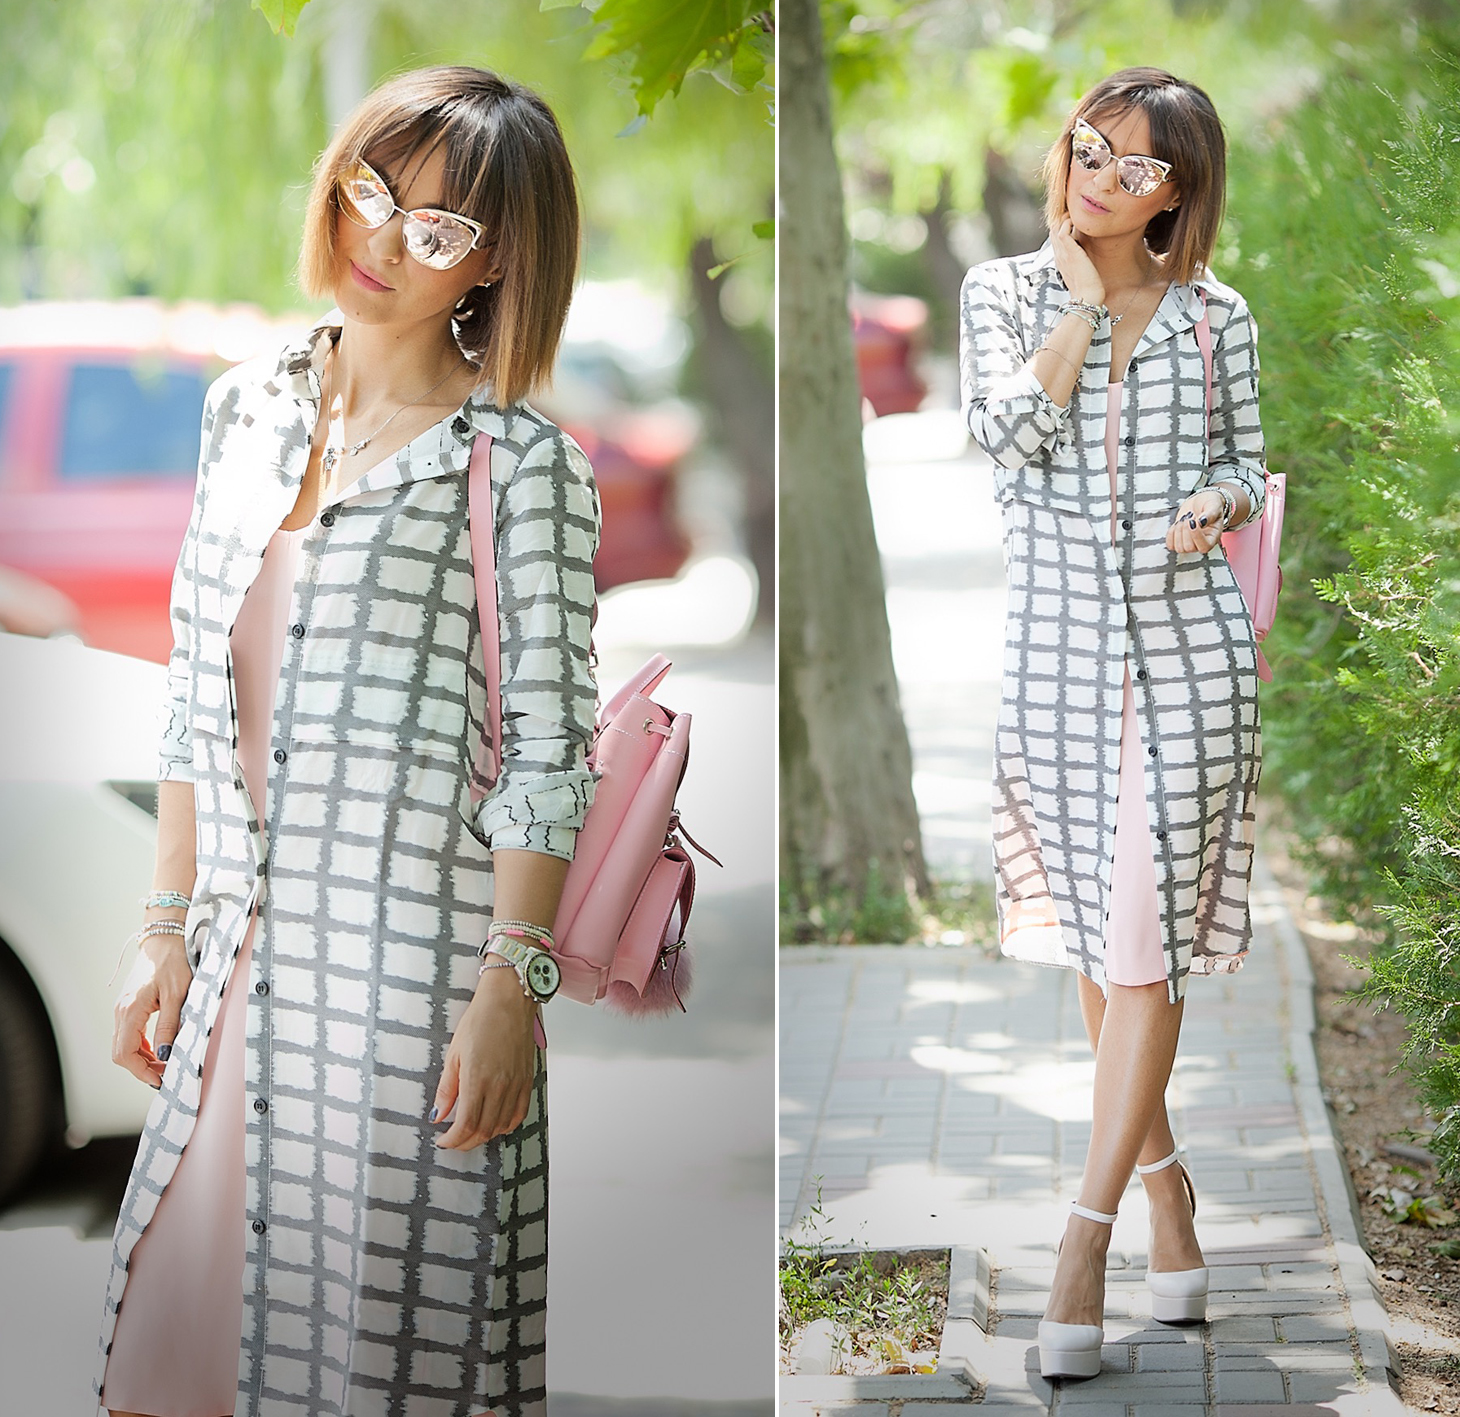 checked-dress-asos-summer-chic-outfit-fashion-blog-galant-girl